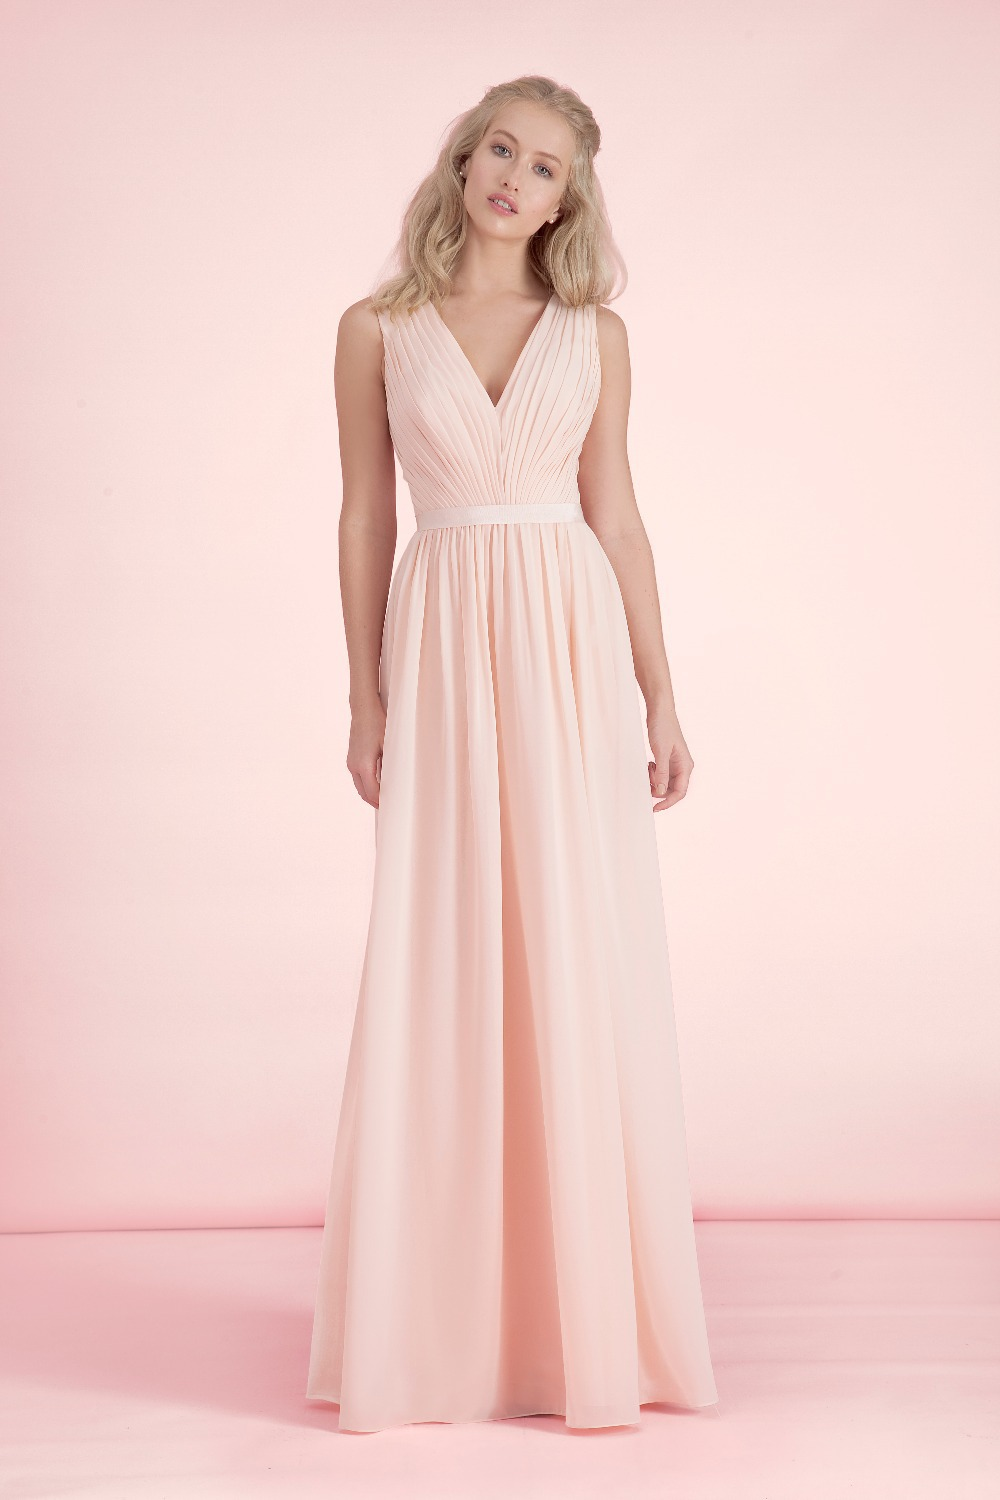 Elegant fashion stunning simple light pink bridesmaid dresses v elegant fashion stunning simple light pink bridesmaid dresses v neck low back chiffon long party dresses vestido de festa klr19 in bridesmaid dresses from ombrellifo Gallery